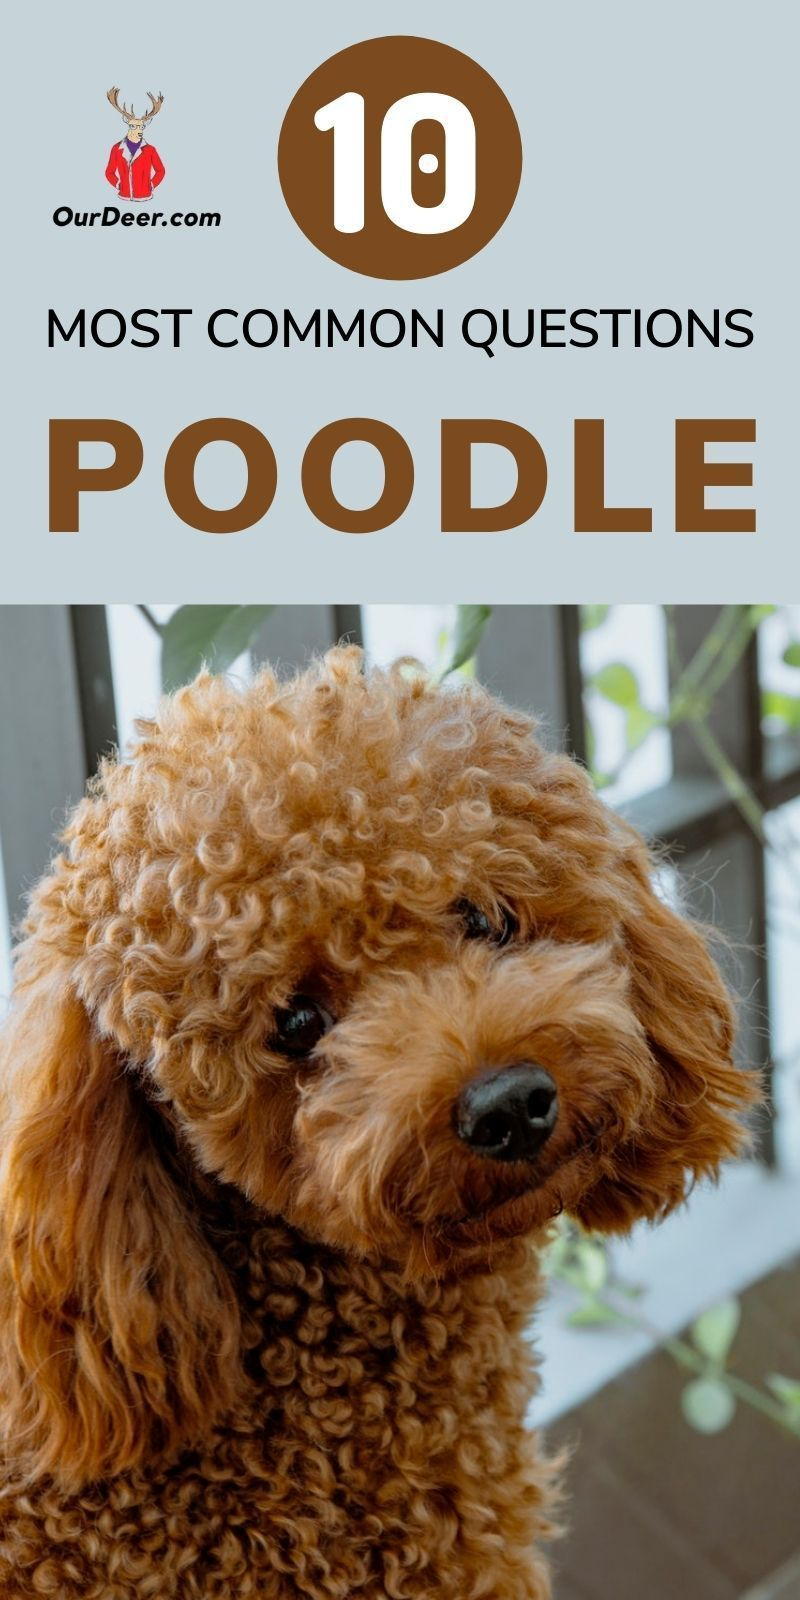 The Poodle may be one of the most misunderstood breeds, as many people will think only of a show Poodle that is trimmed and dainty. #Poodle #PoodlePuppies #breedoverview #PoodlePuppy #PoodleTraining #PoodleHealth